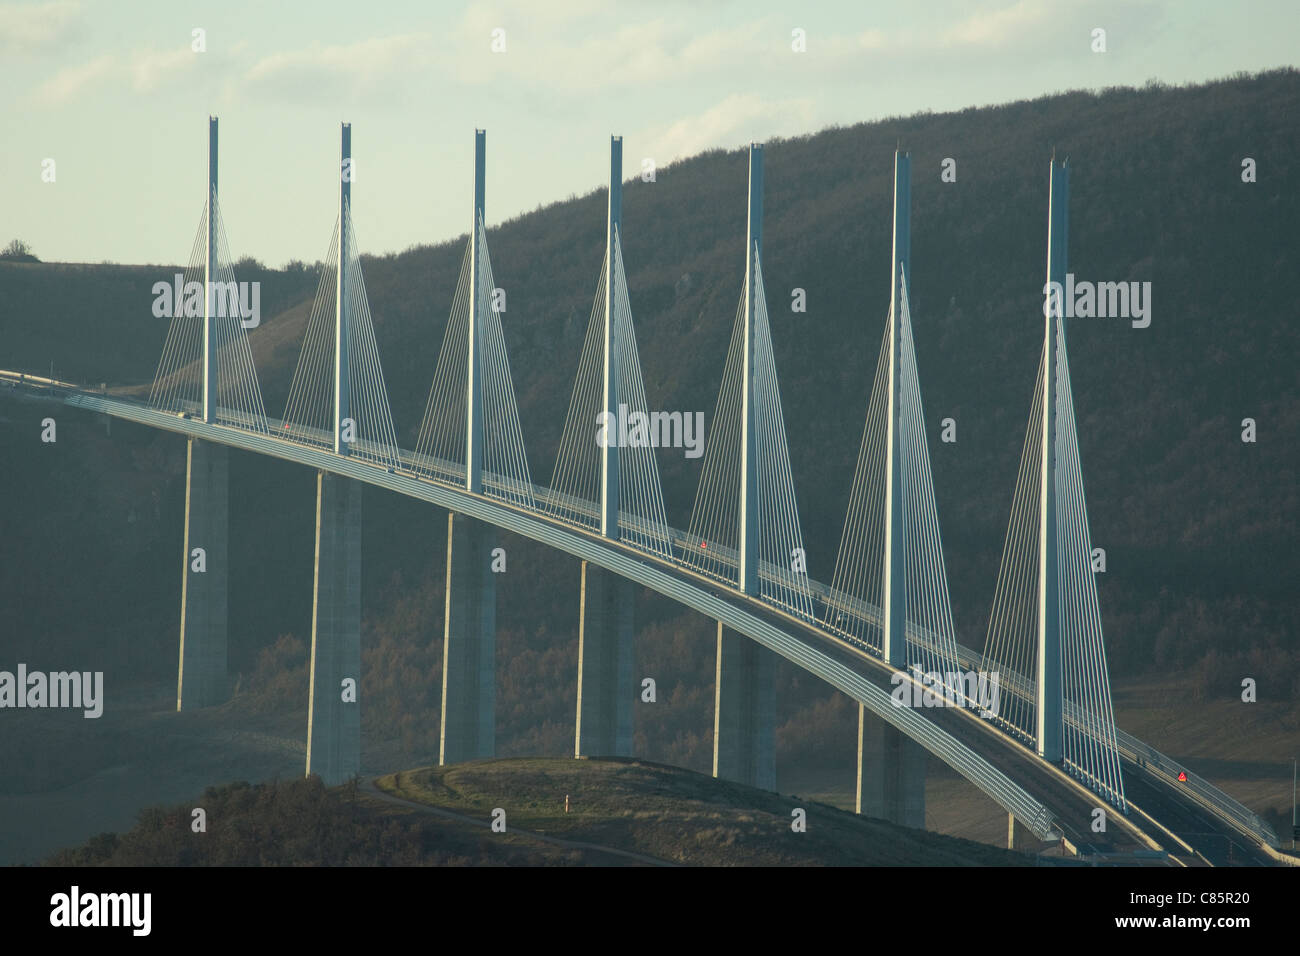 Millau viaduct over the Tarn river is the world's tallest bridge: a Norman Foster design, its masts and cables - Stock Image